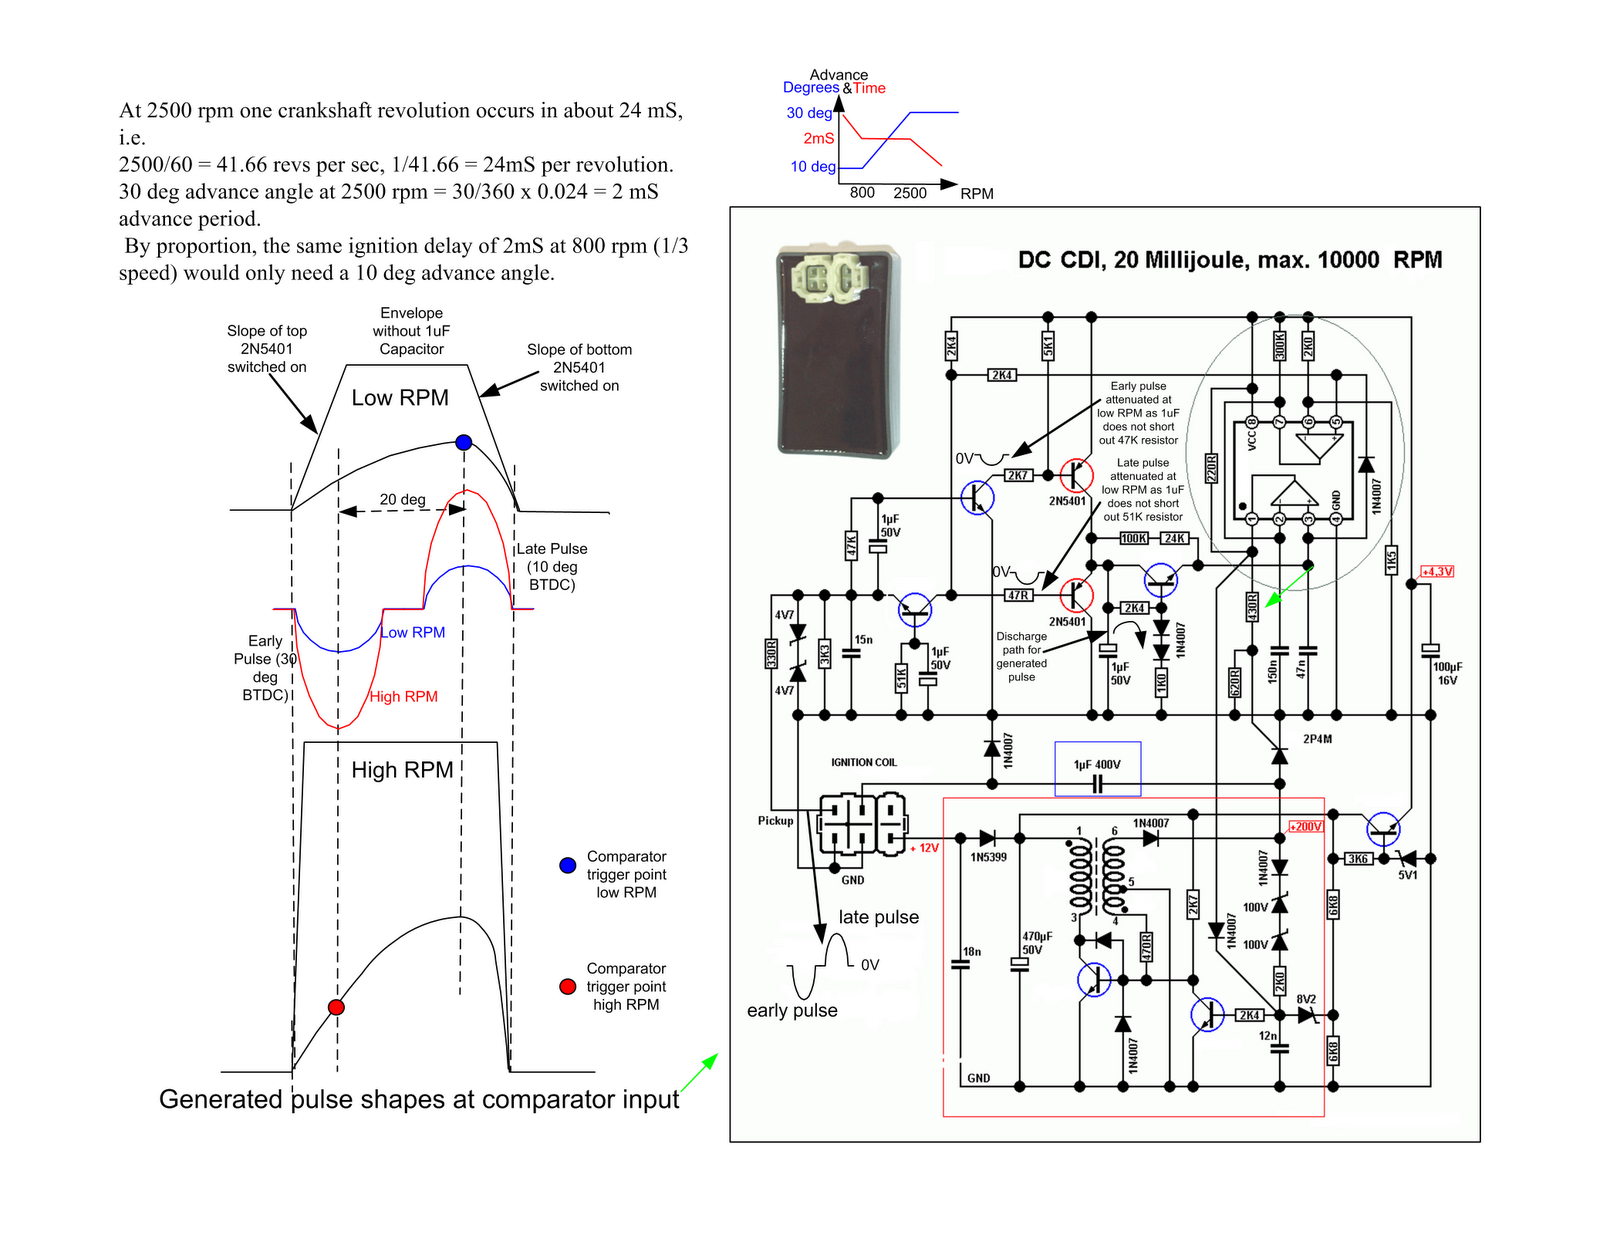 Dc Cdi Schematic Updated Techy At Day Blogger At Noon And A Hobbyist At Night In 2020 Diagram Wire Electronics Circuit